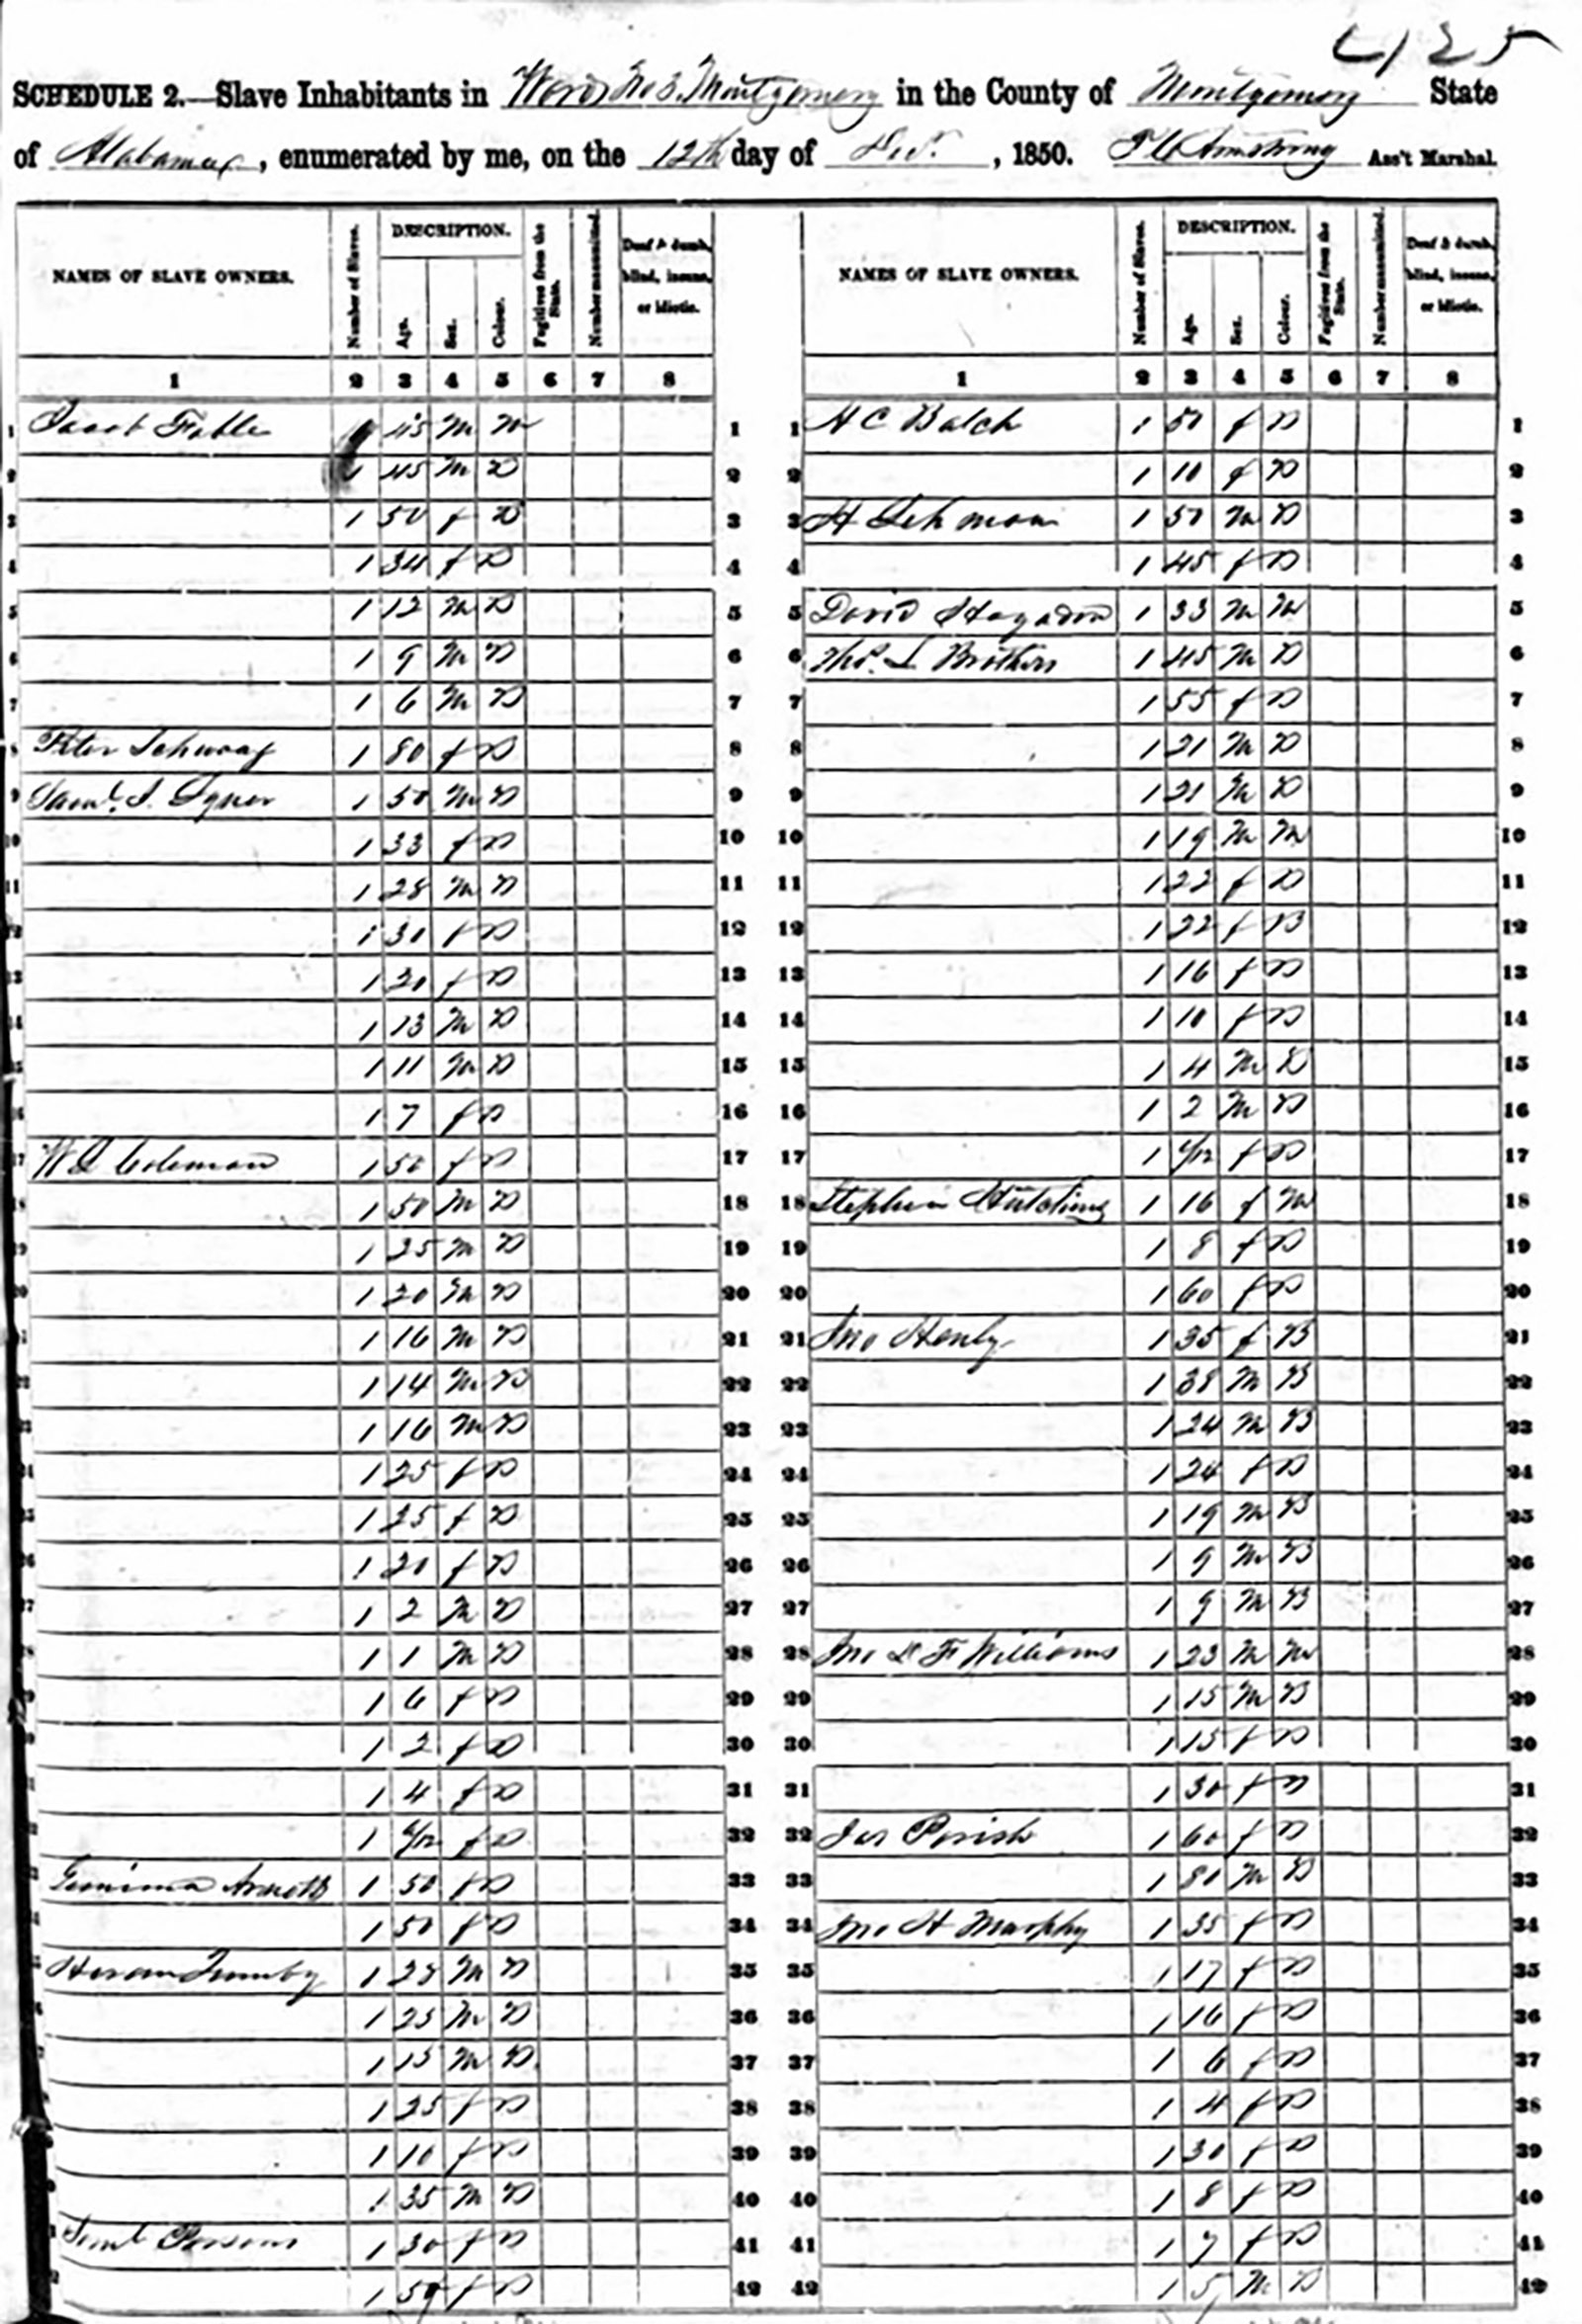 Page from the 1850 Montgomery County slave schedule identifying Henry (Hayum) Lehman as the owner of two slaves